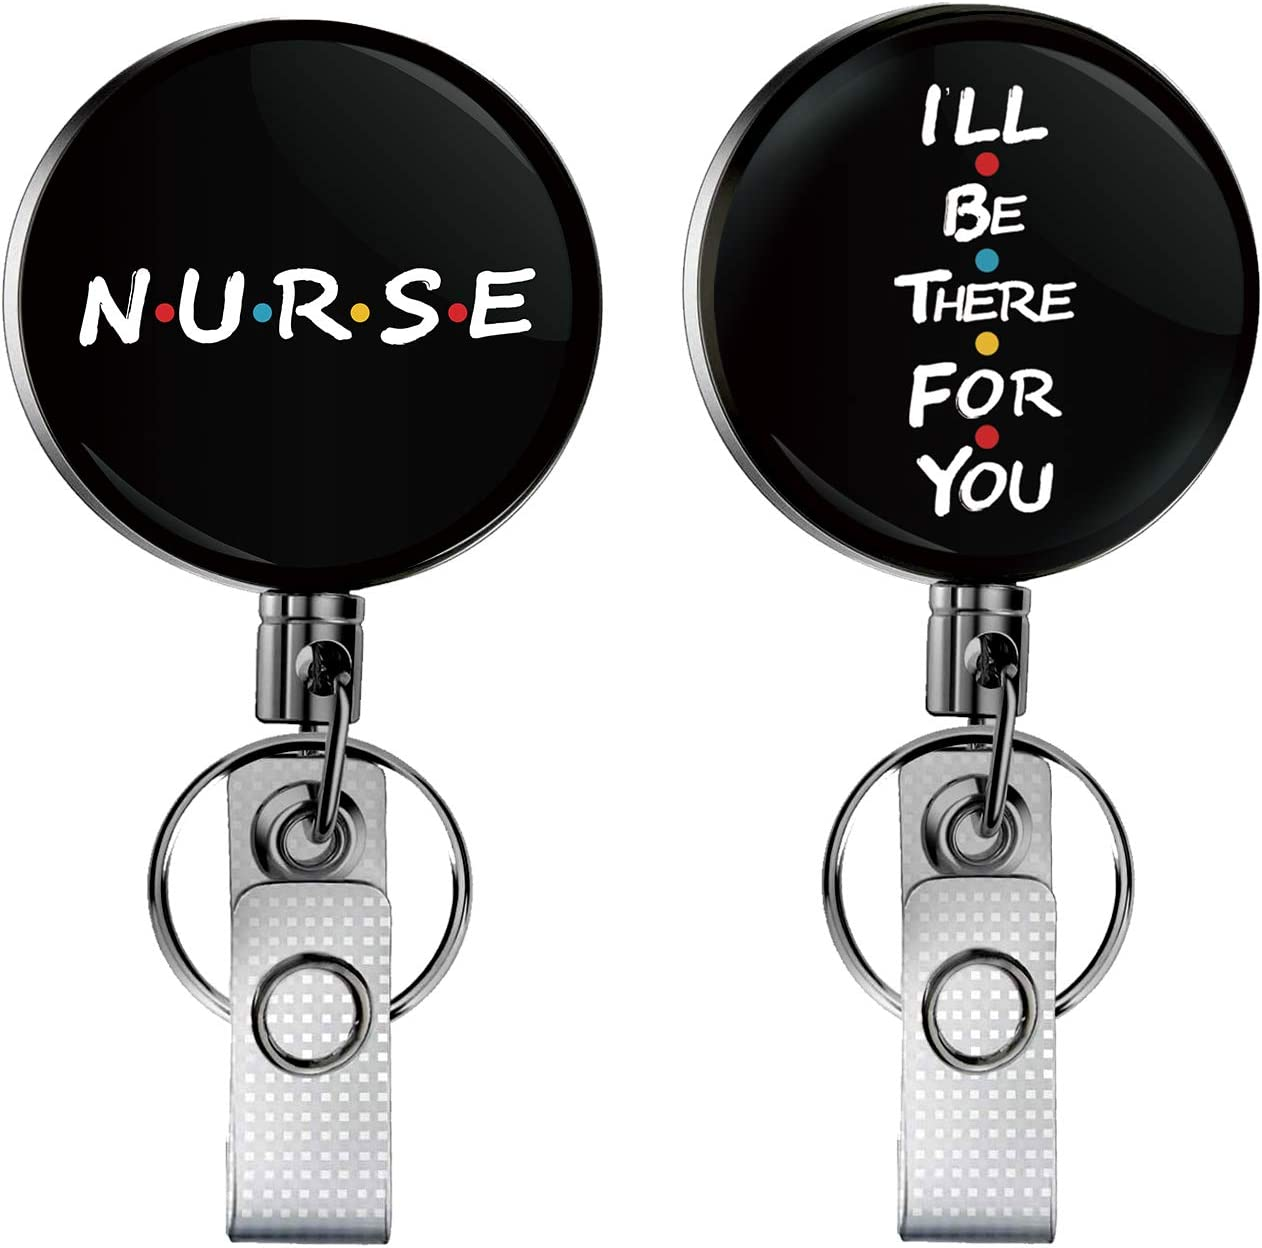 AloParty Nurse and Friends Retractable Badge Reel, Heavy Duty Badge Holder, 1.6inch, I'll be There for You Badge Reel, 2 Pack.